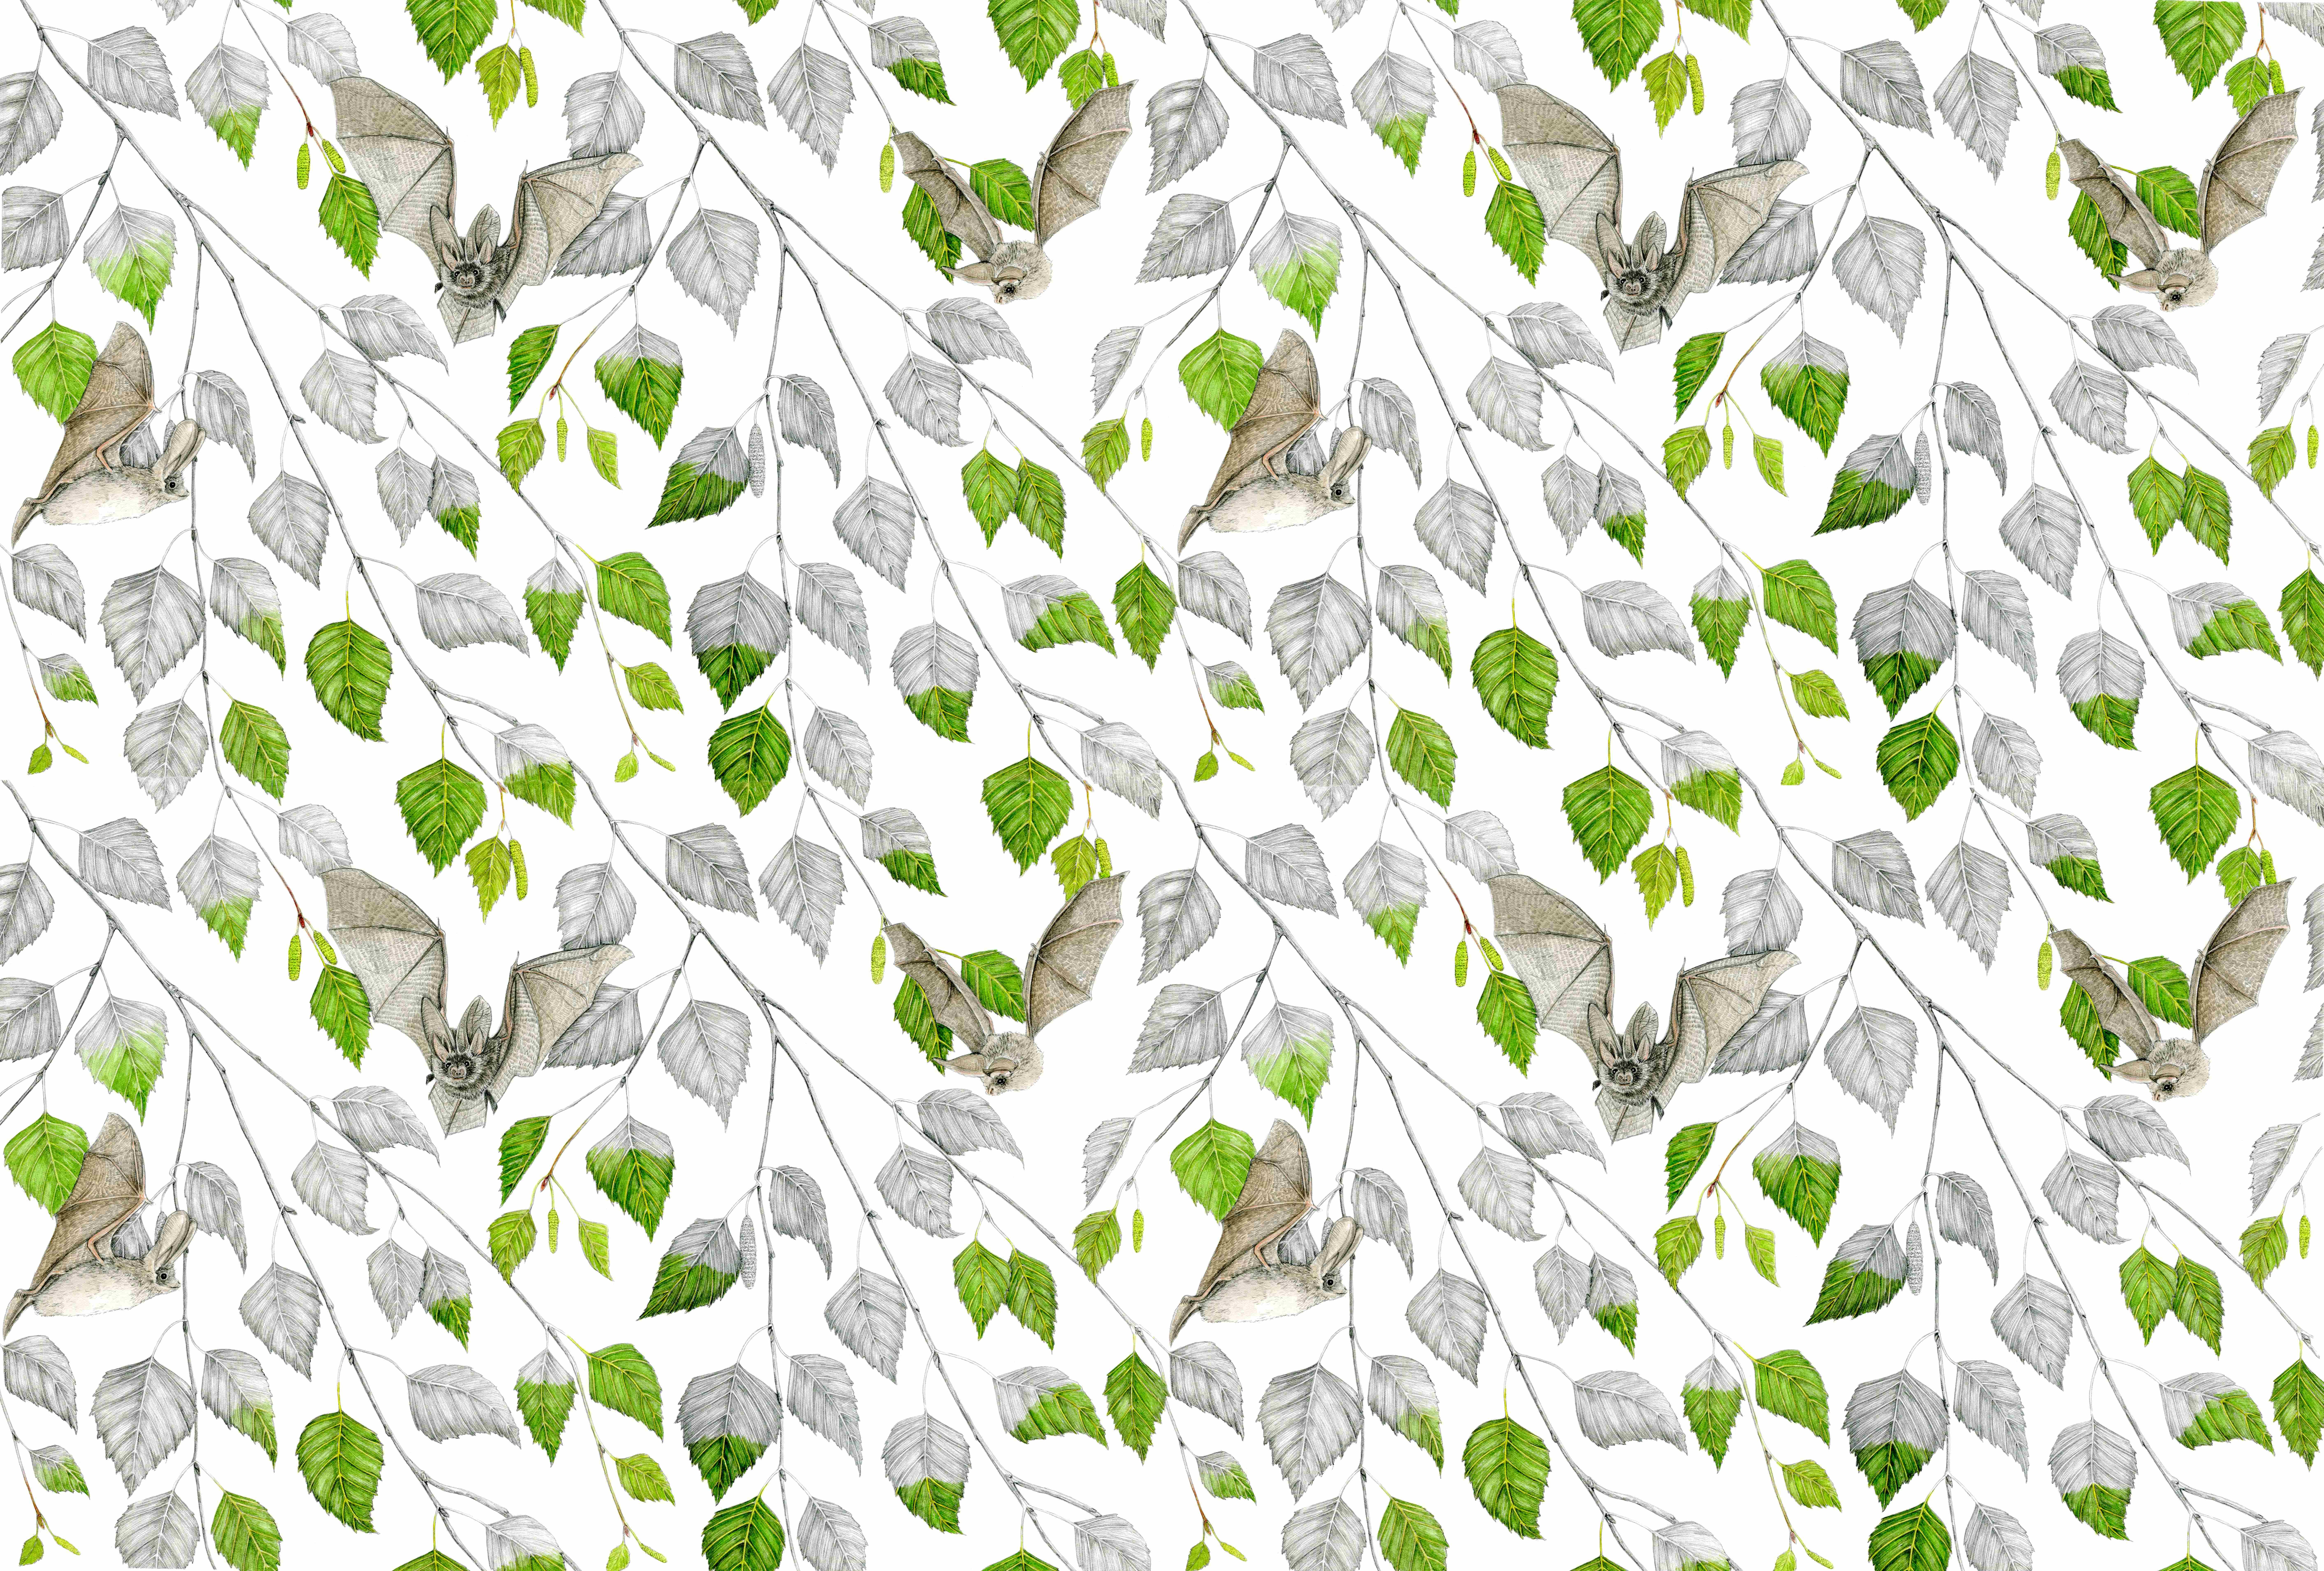 Illustration naturaliste, motif animalier, motif nature, illustration oreillard gris, illustration feuille bouleau.